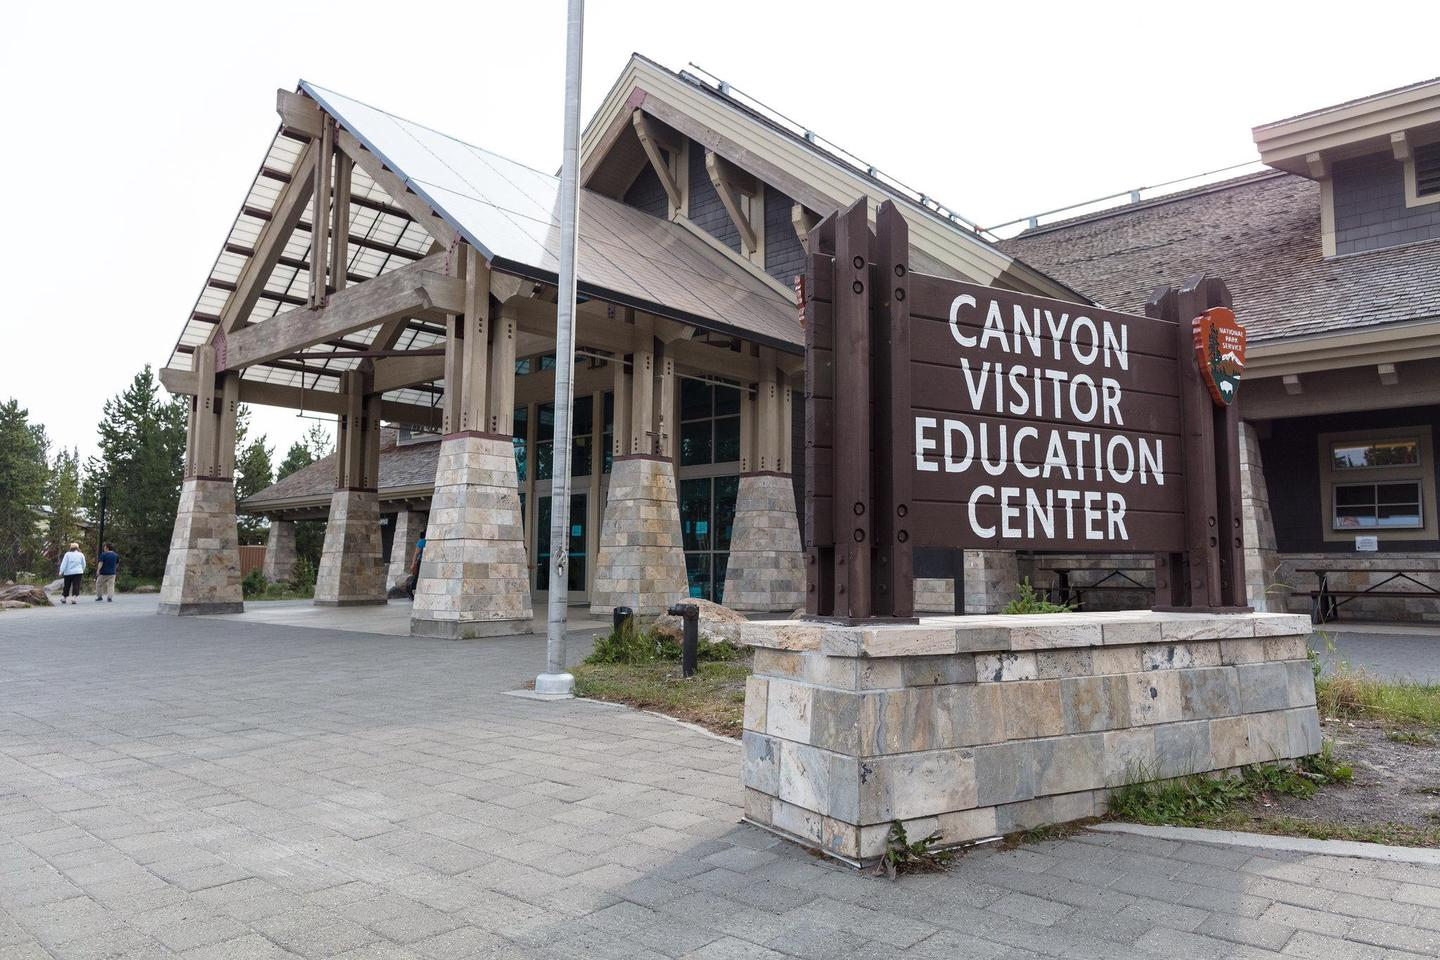 Canyon Visitor Education CenterVisit the Canyon Visitor Education Center to learn about geology of the Yellowstone volcano and get park orientation information.